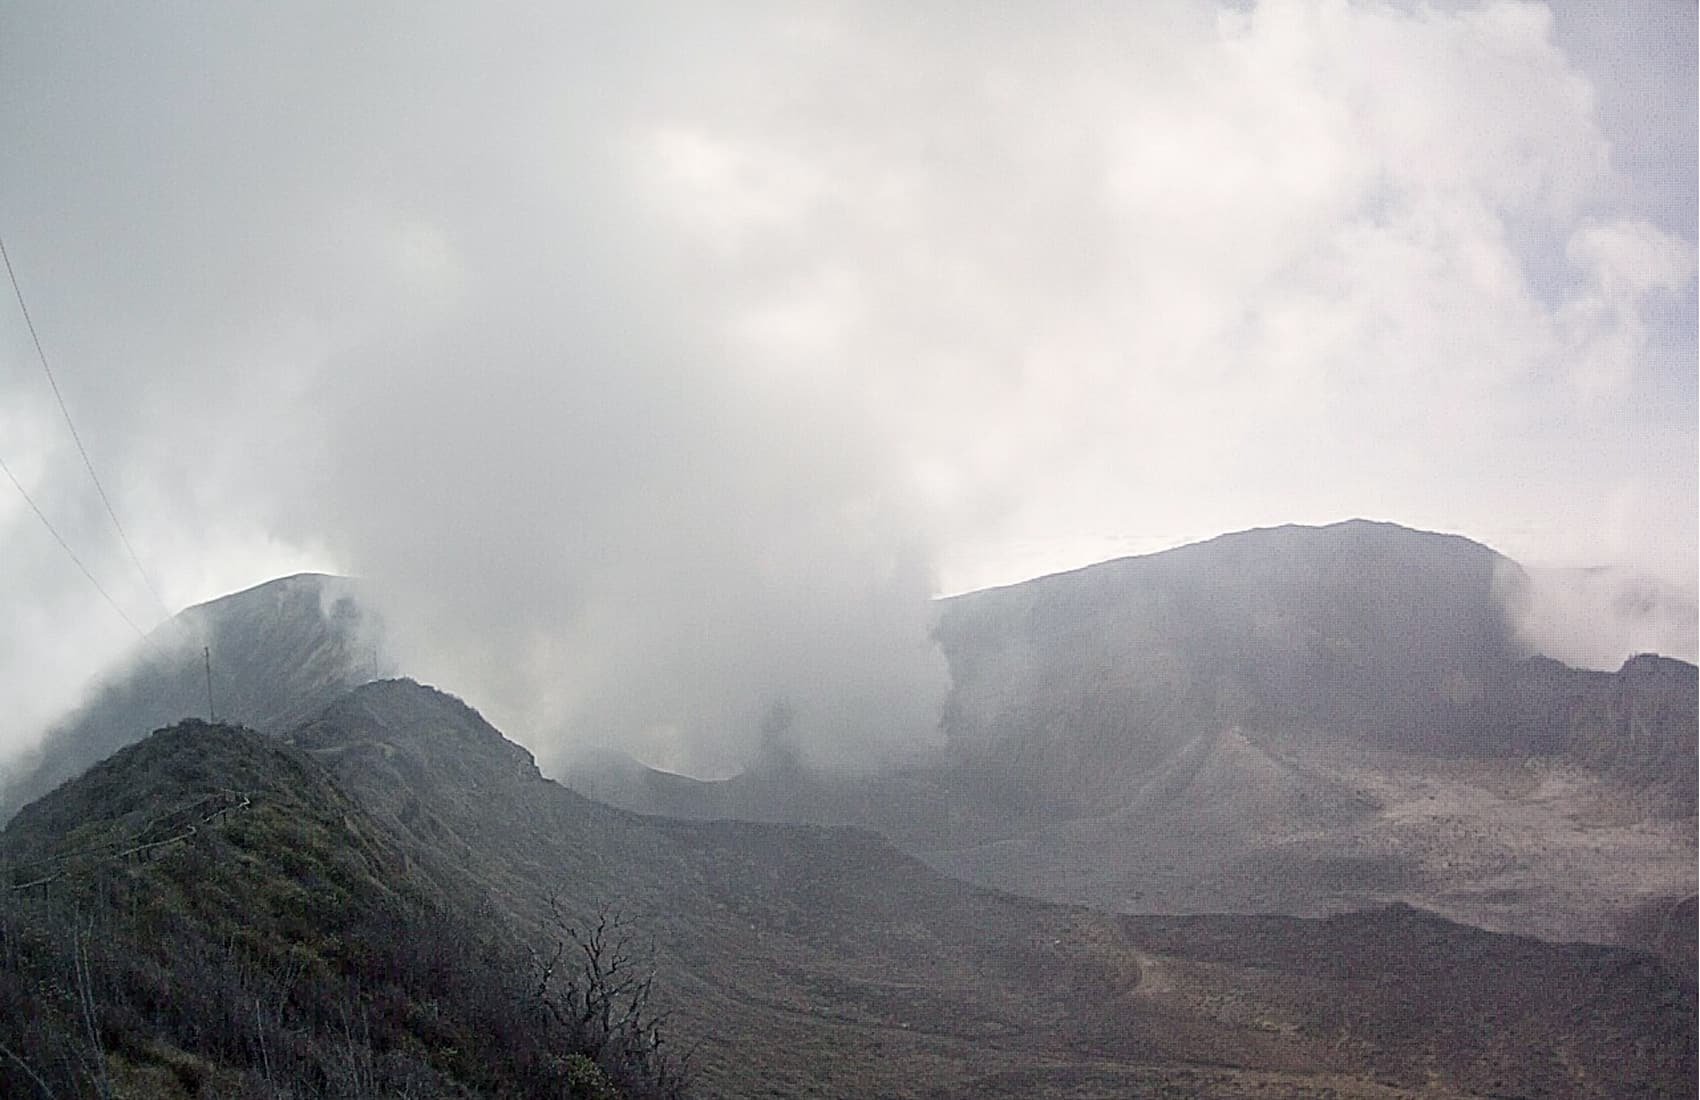 Vapor and ash columns were visible coming out of the Turrialba Volcano's crater at 4:43 p.m. on March 19, 2015.